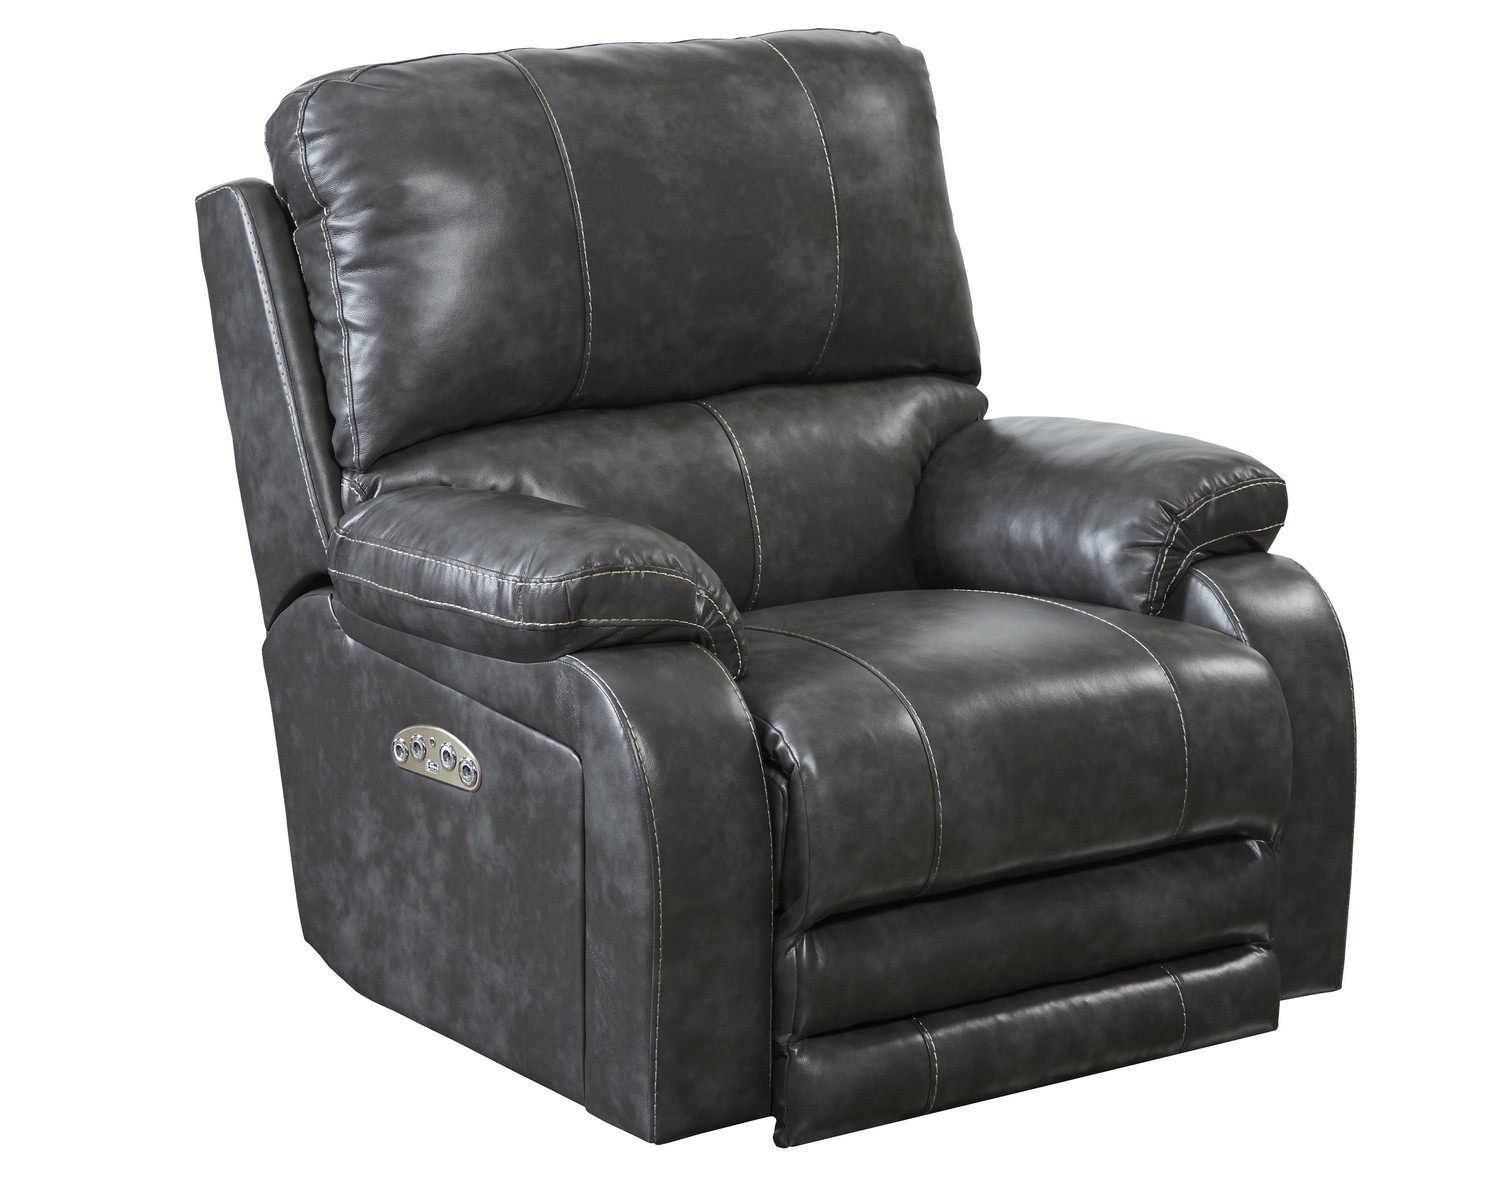 CatNapper Thornton Power Headrest Power Lay Flat Recliner - Steel